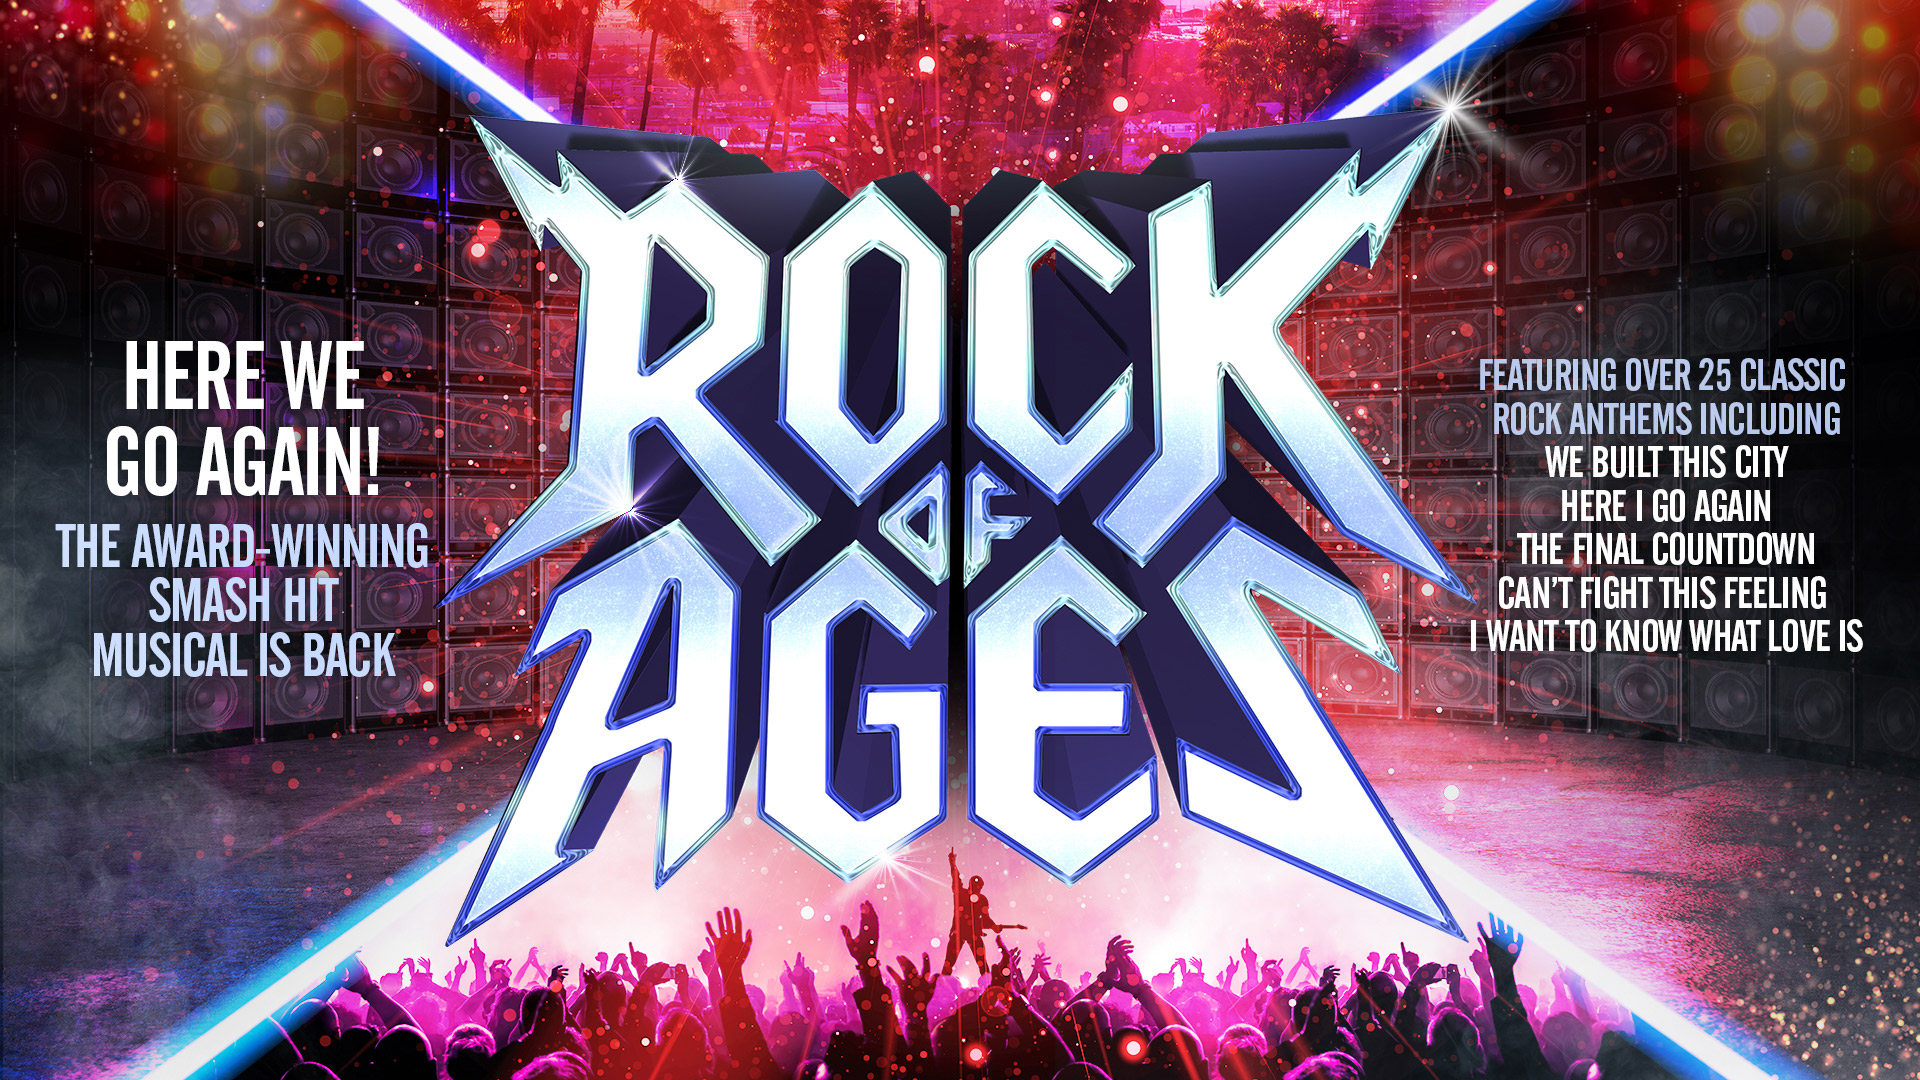 ROCK OF AGES in a very lightening rock font and a big crowd underneath